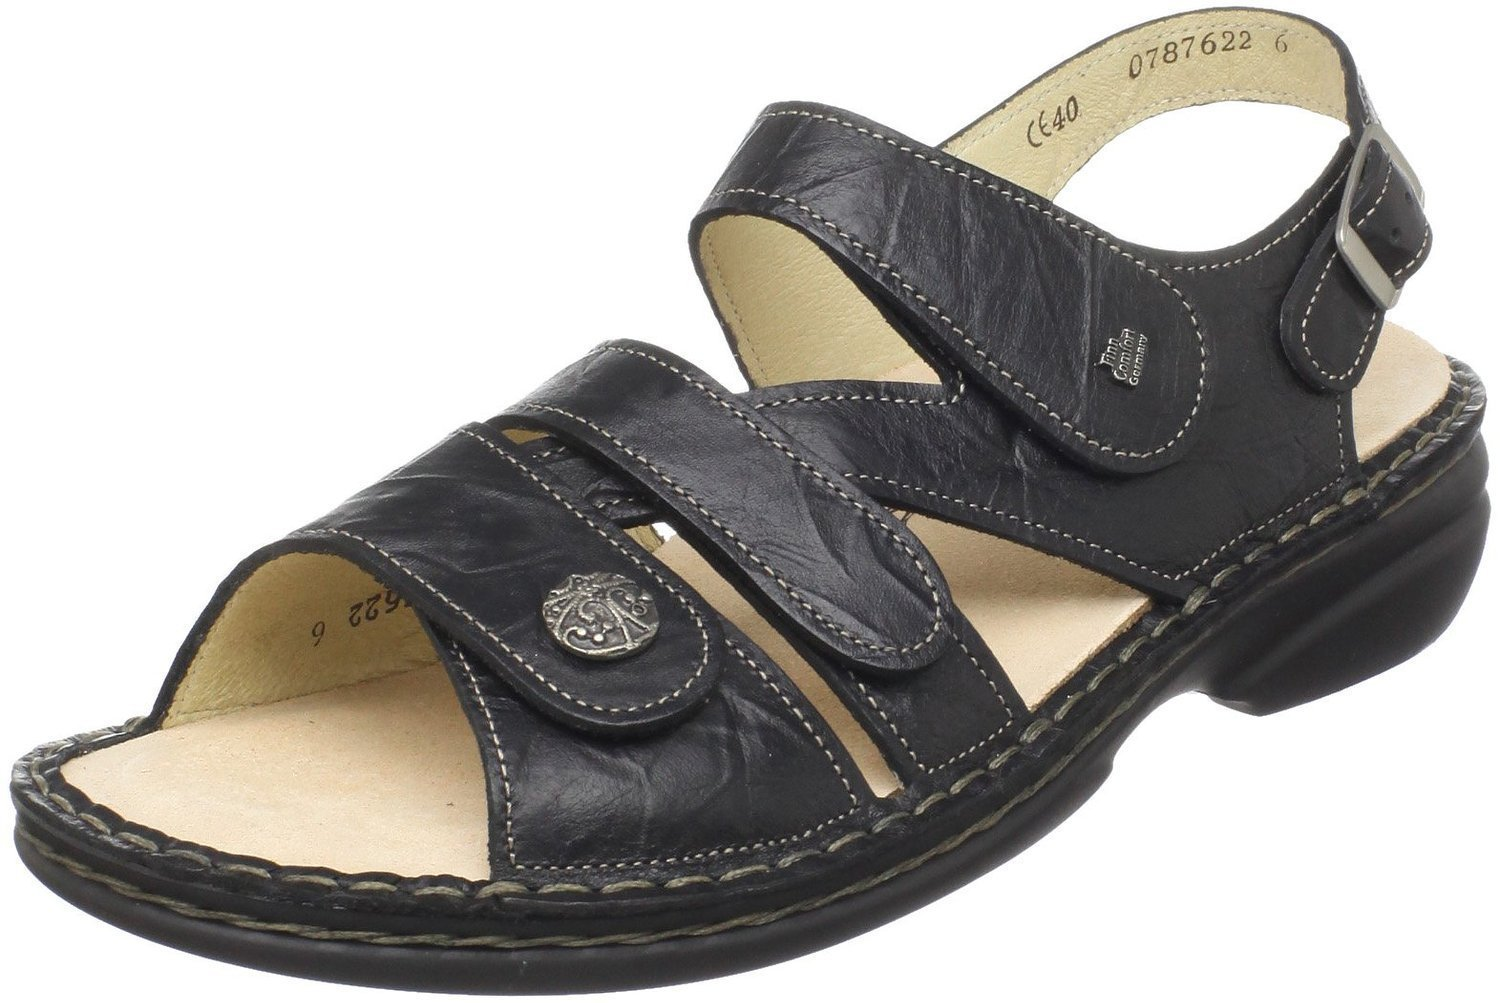 Finn Comfort Gomera Women Flats Shoes Sandals B01C4C30S0 35 M EU|Black